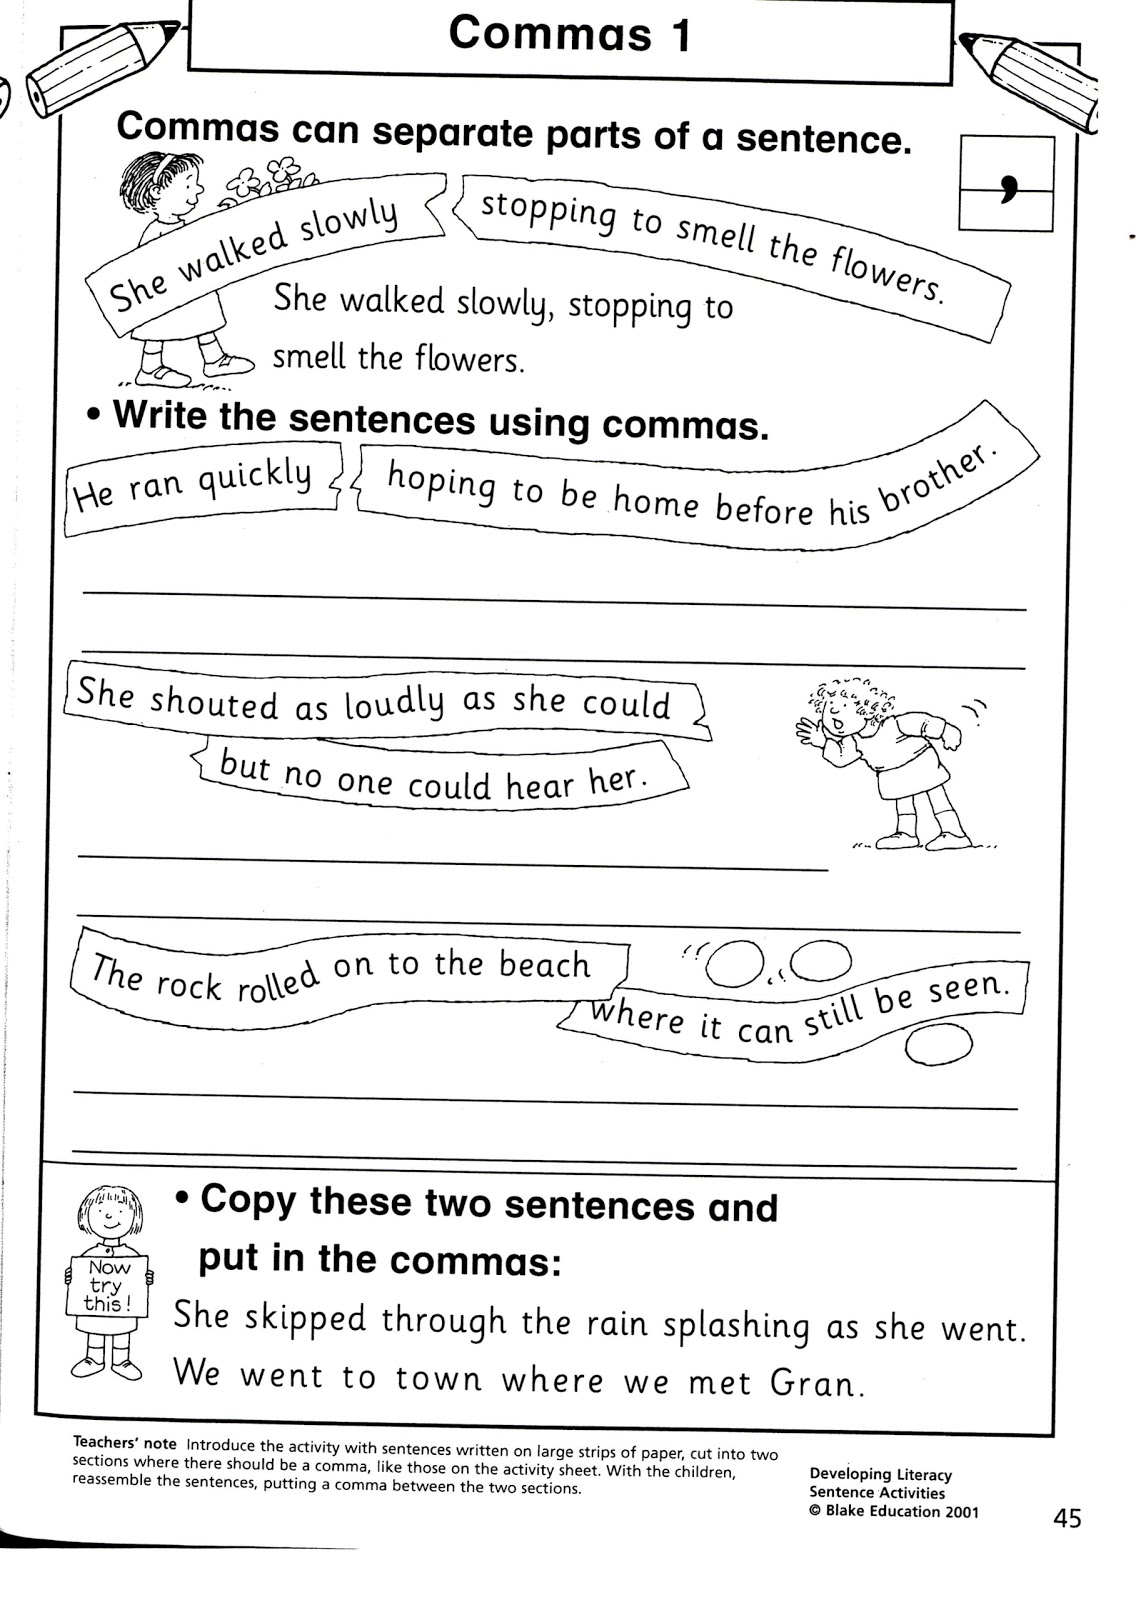 Sentence Worksheets For 6th Grade |Happy Memorial Day 2014